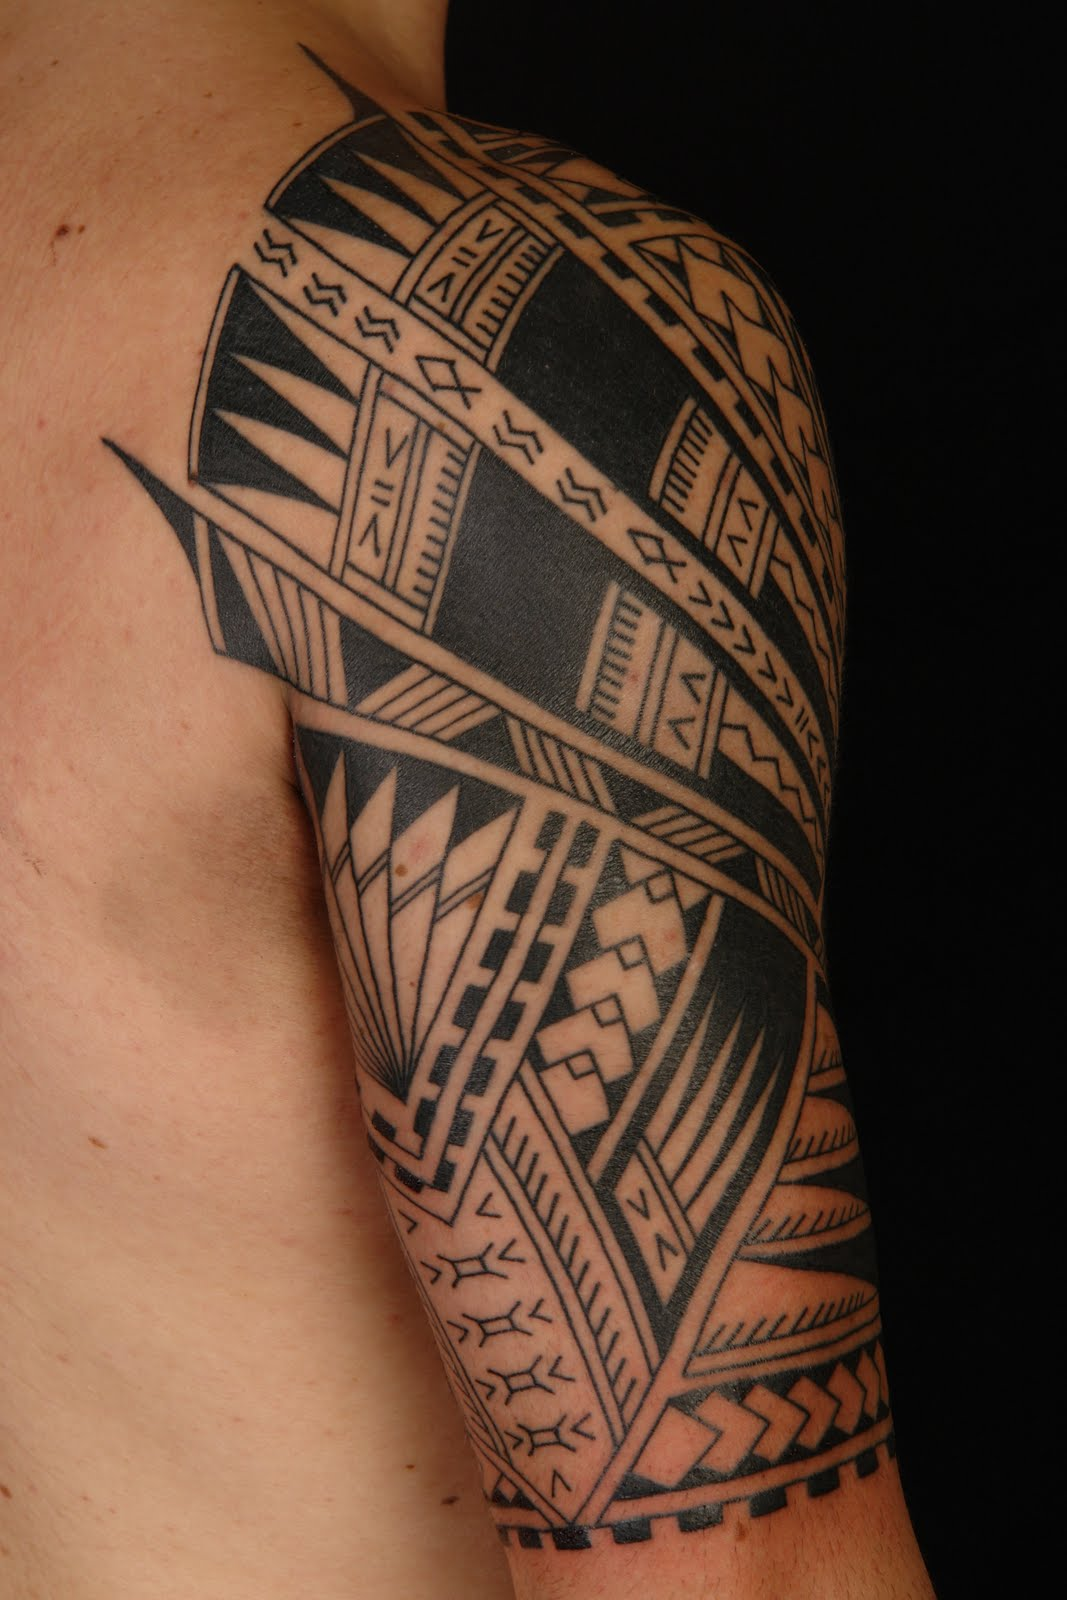 maori polynesian tattoo samoan polynesian half sleeve tattoo. Black Bedroom Furniture Sets. Home Design Ideas